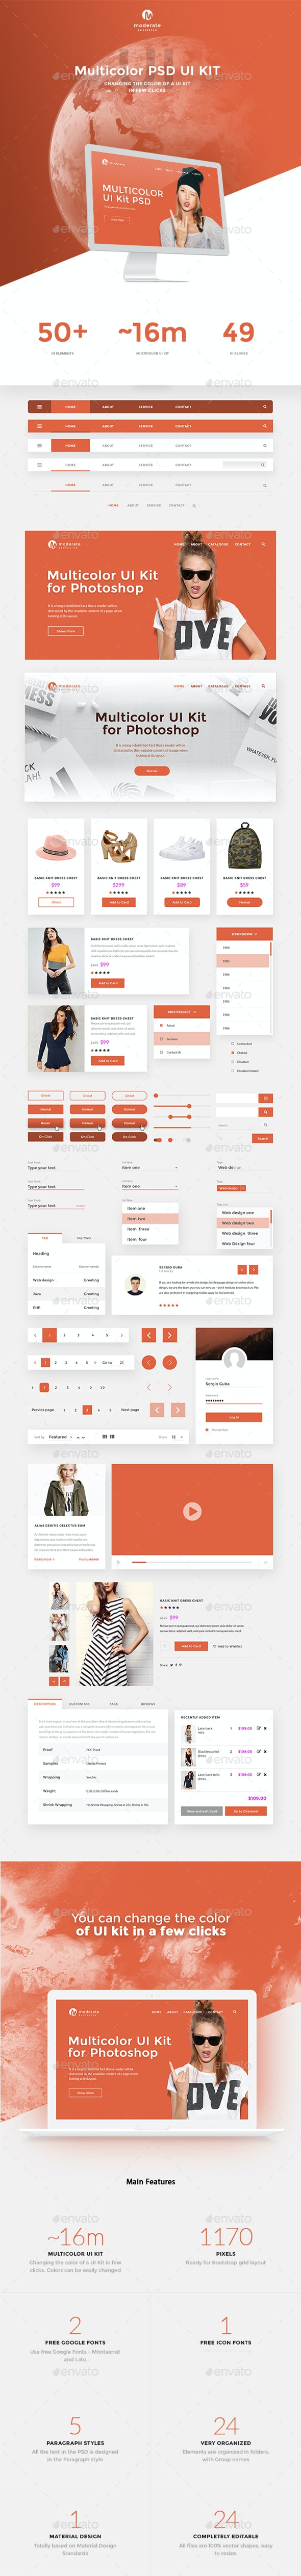 Moderate - Multicolor UI-Kit PSD